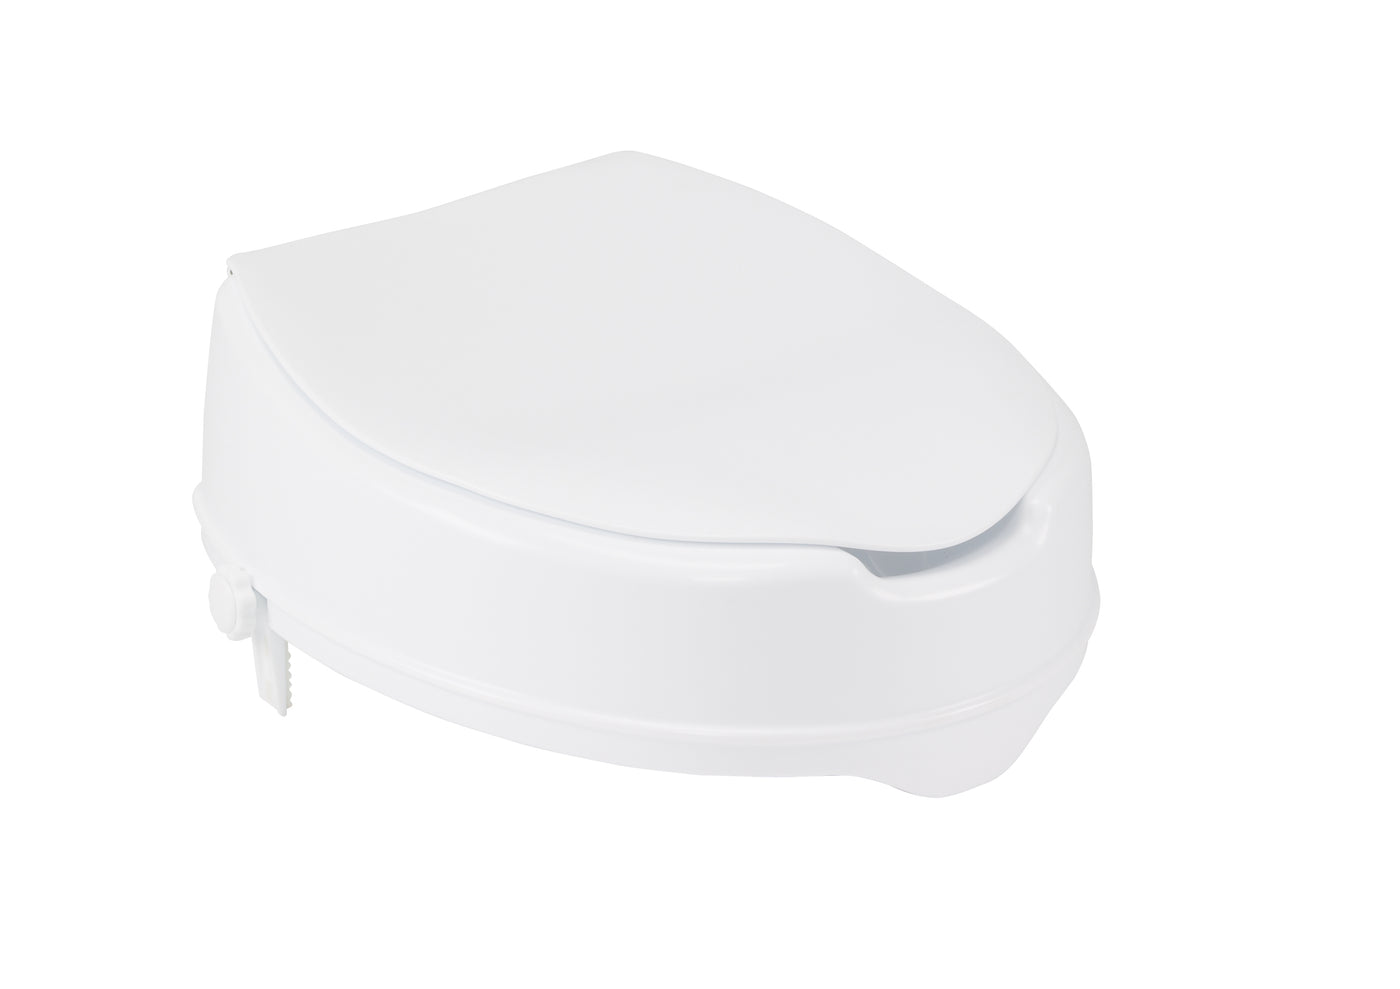 Terrific Raised Toilet Seat With Lock And Lid Machost Co Dining Chair Design Ideas Machostcouk